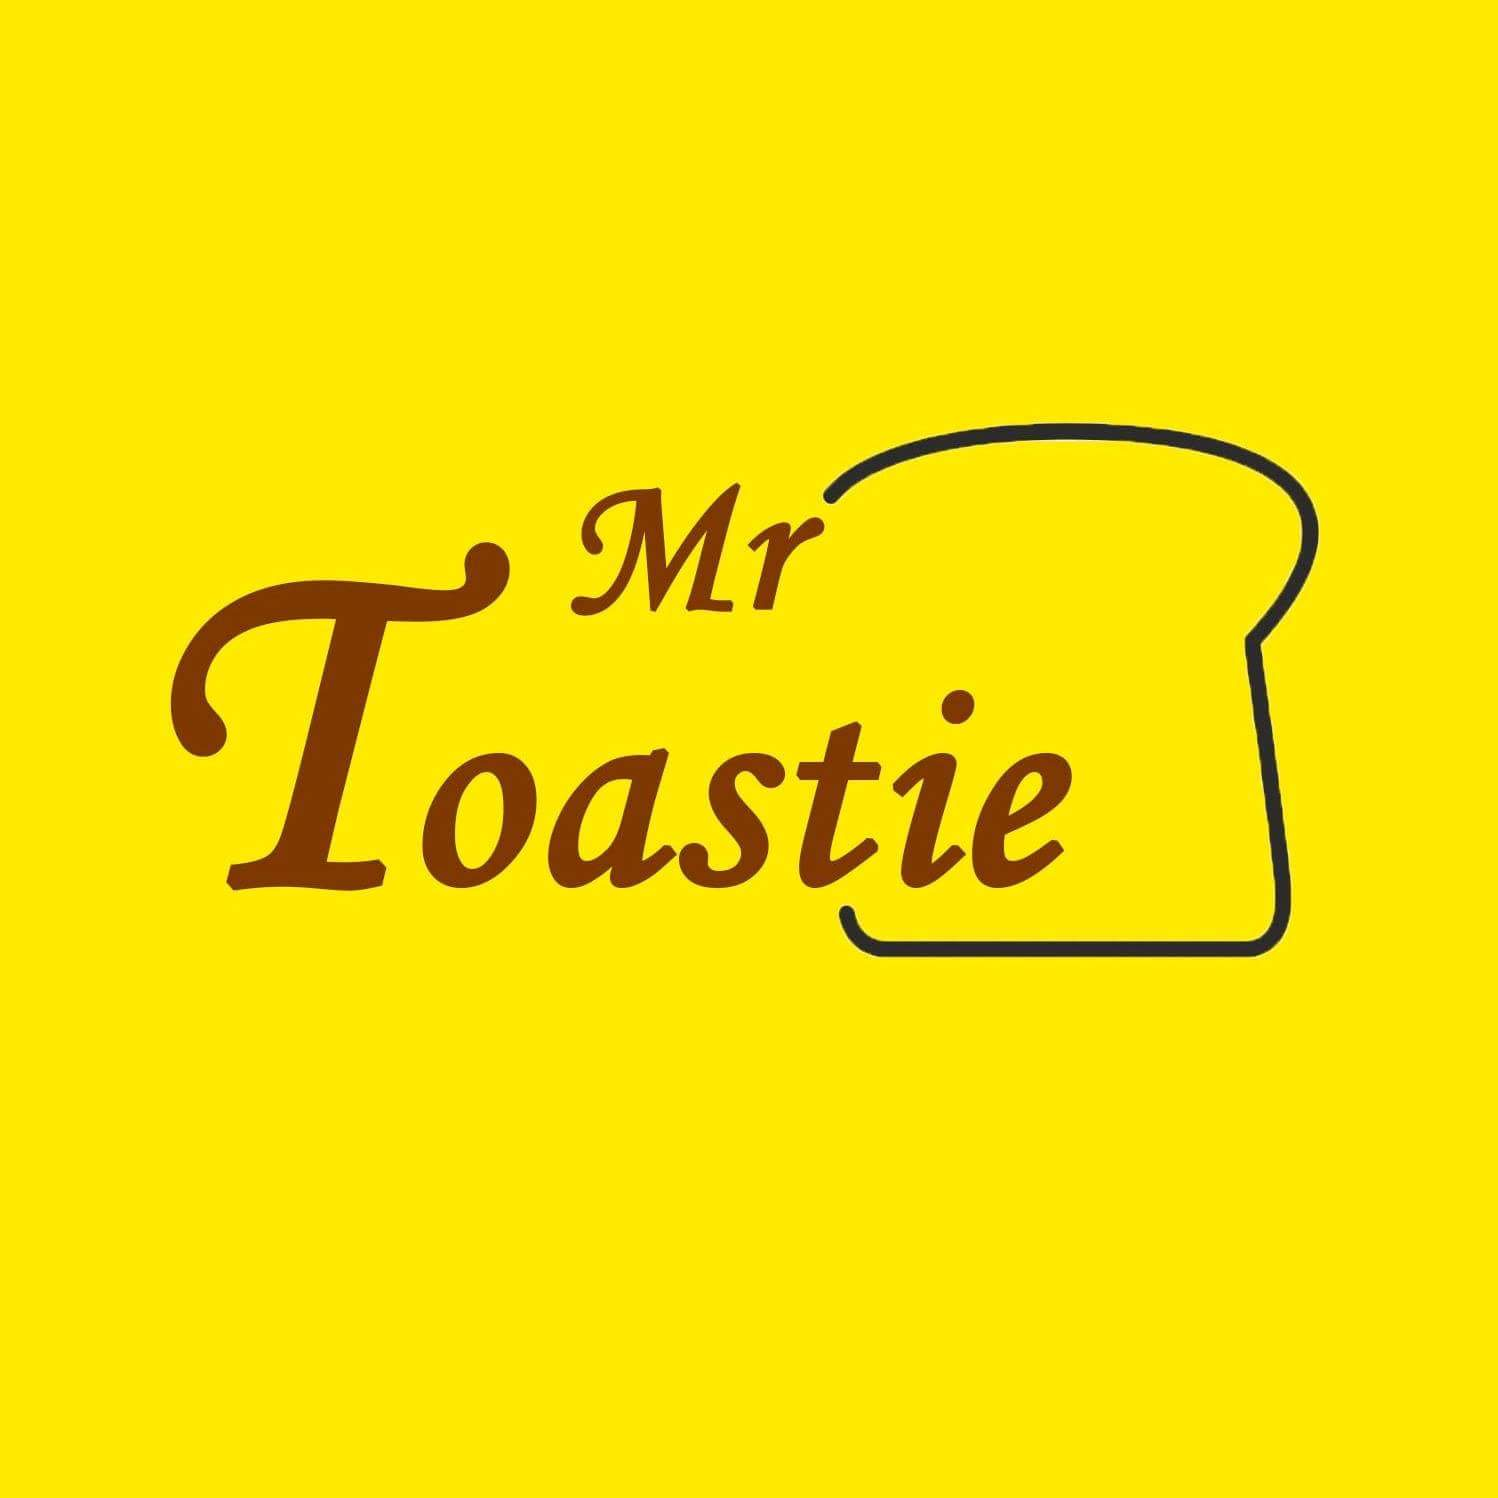 Mr Toastie primary image